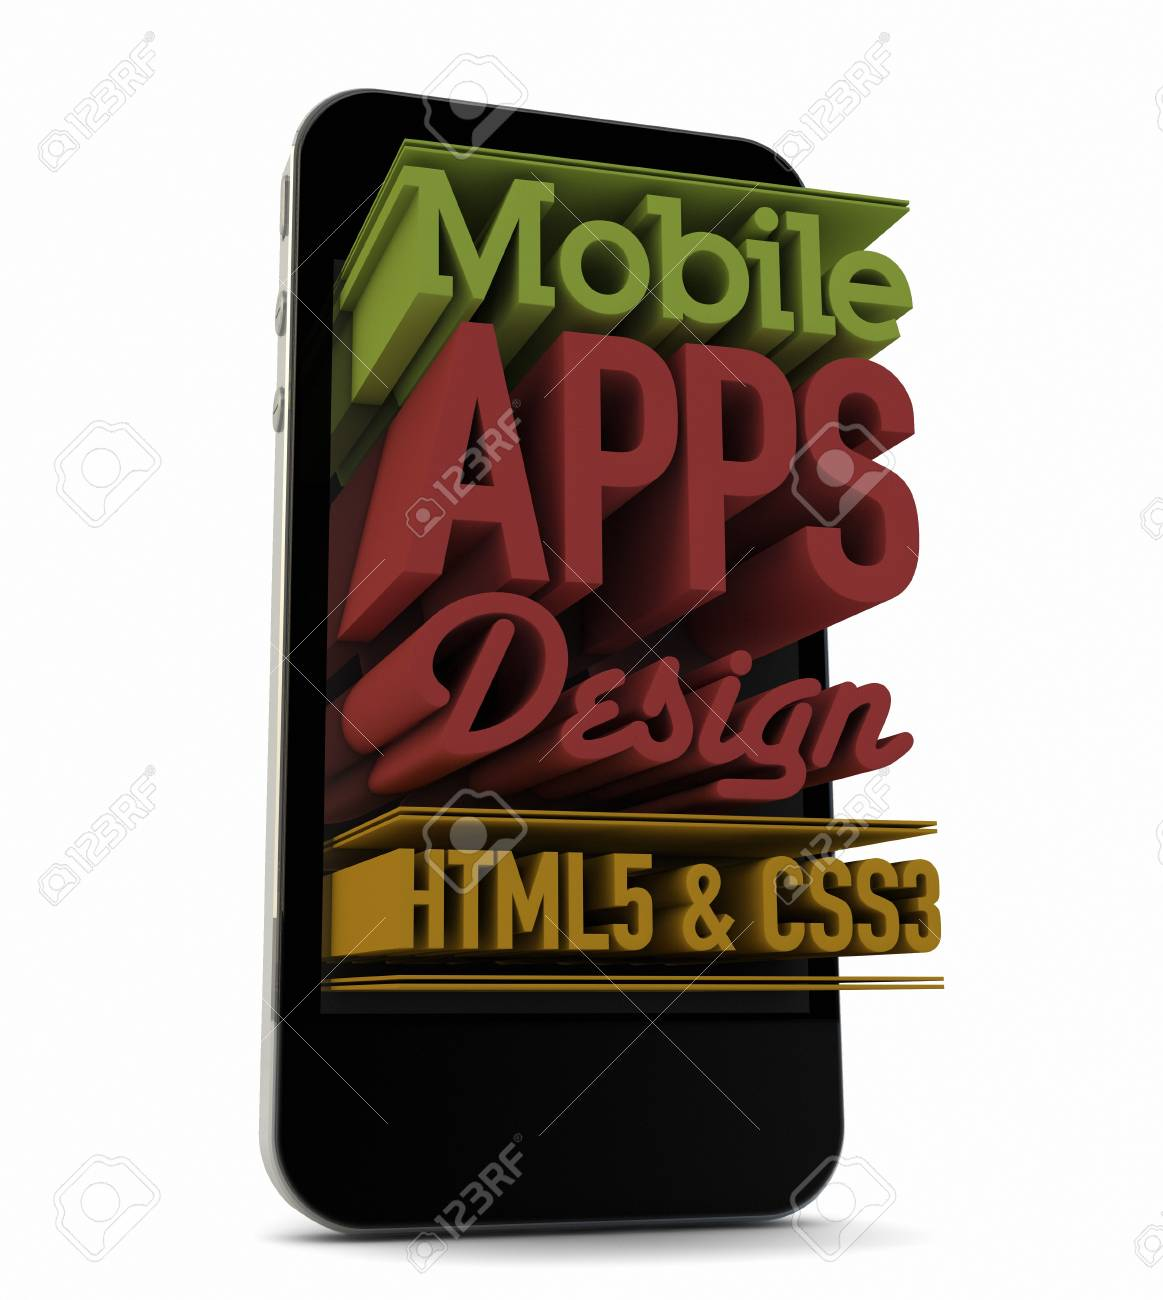 render of an smartphone with text on the screen Stock Photo - 18571893